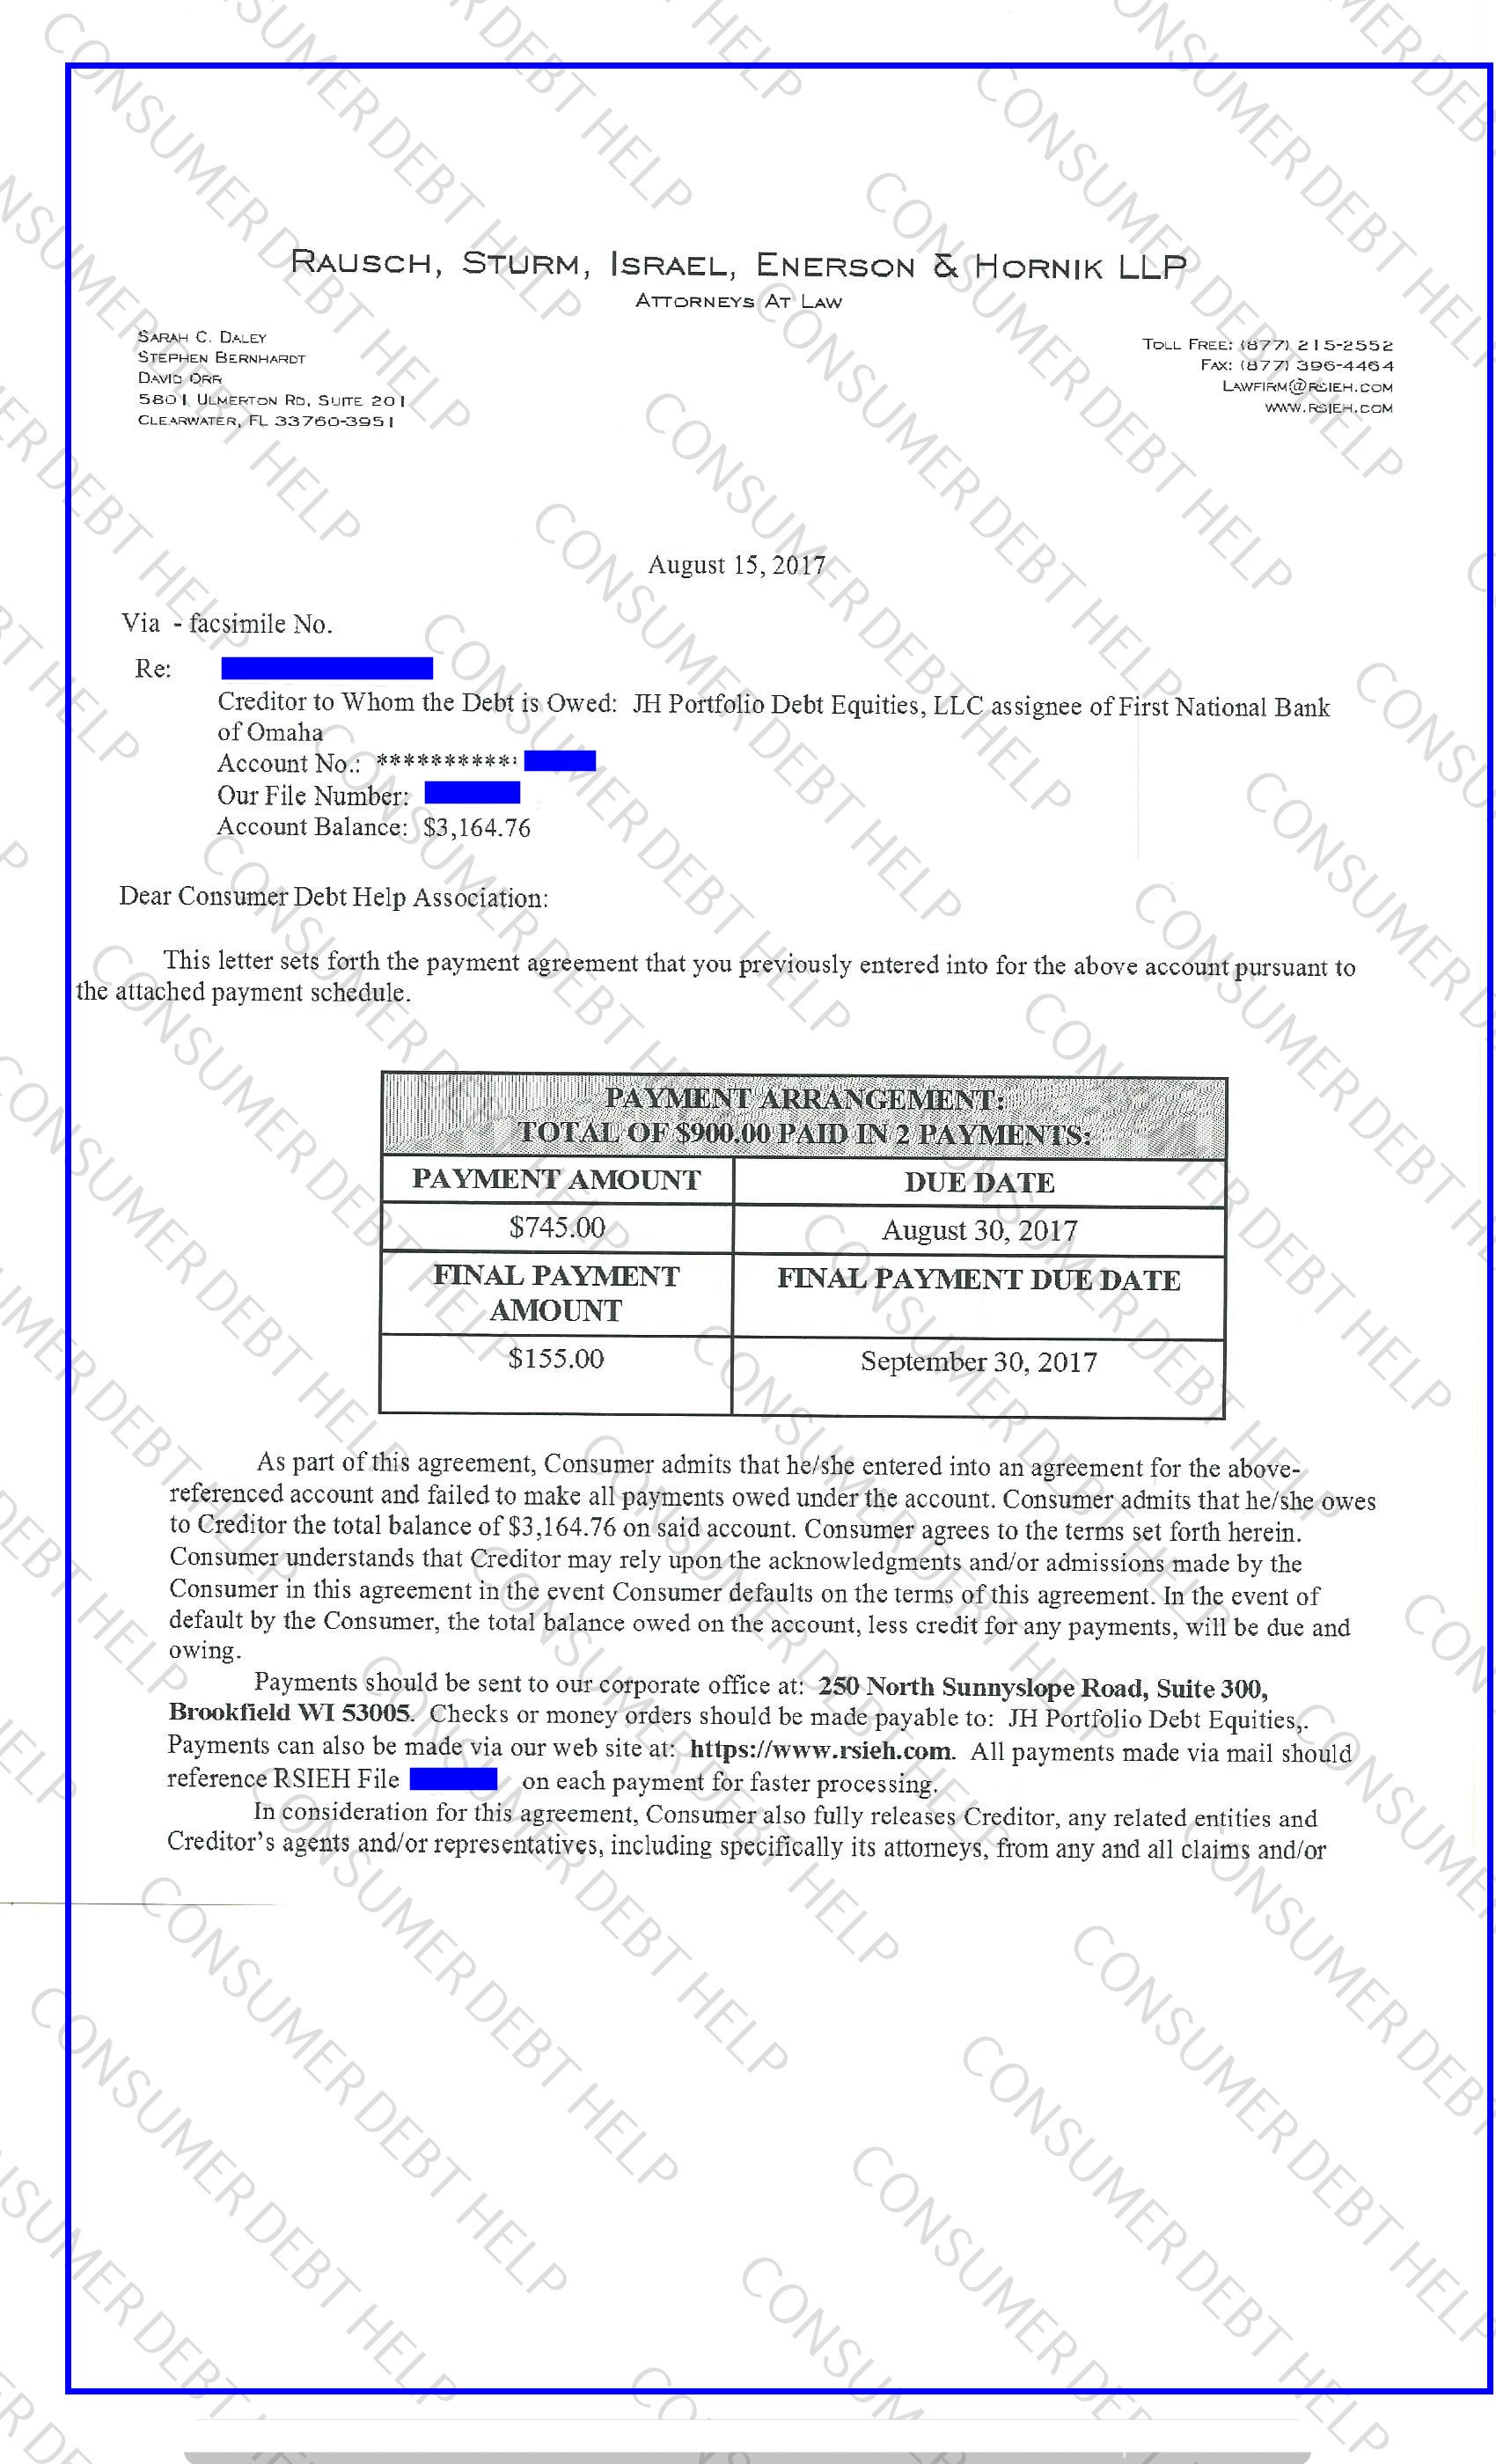 Settlement letters from first national bank of omaha consumer debt debt relief specialist wants to share a settlement letter from first national bank of omaha spiritdancerdesigns Choice Image